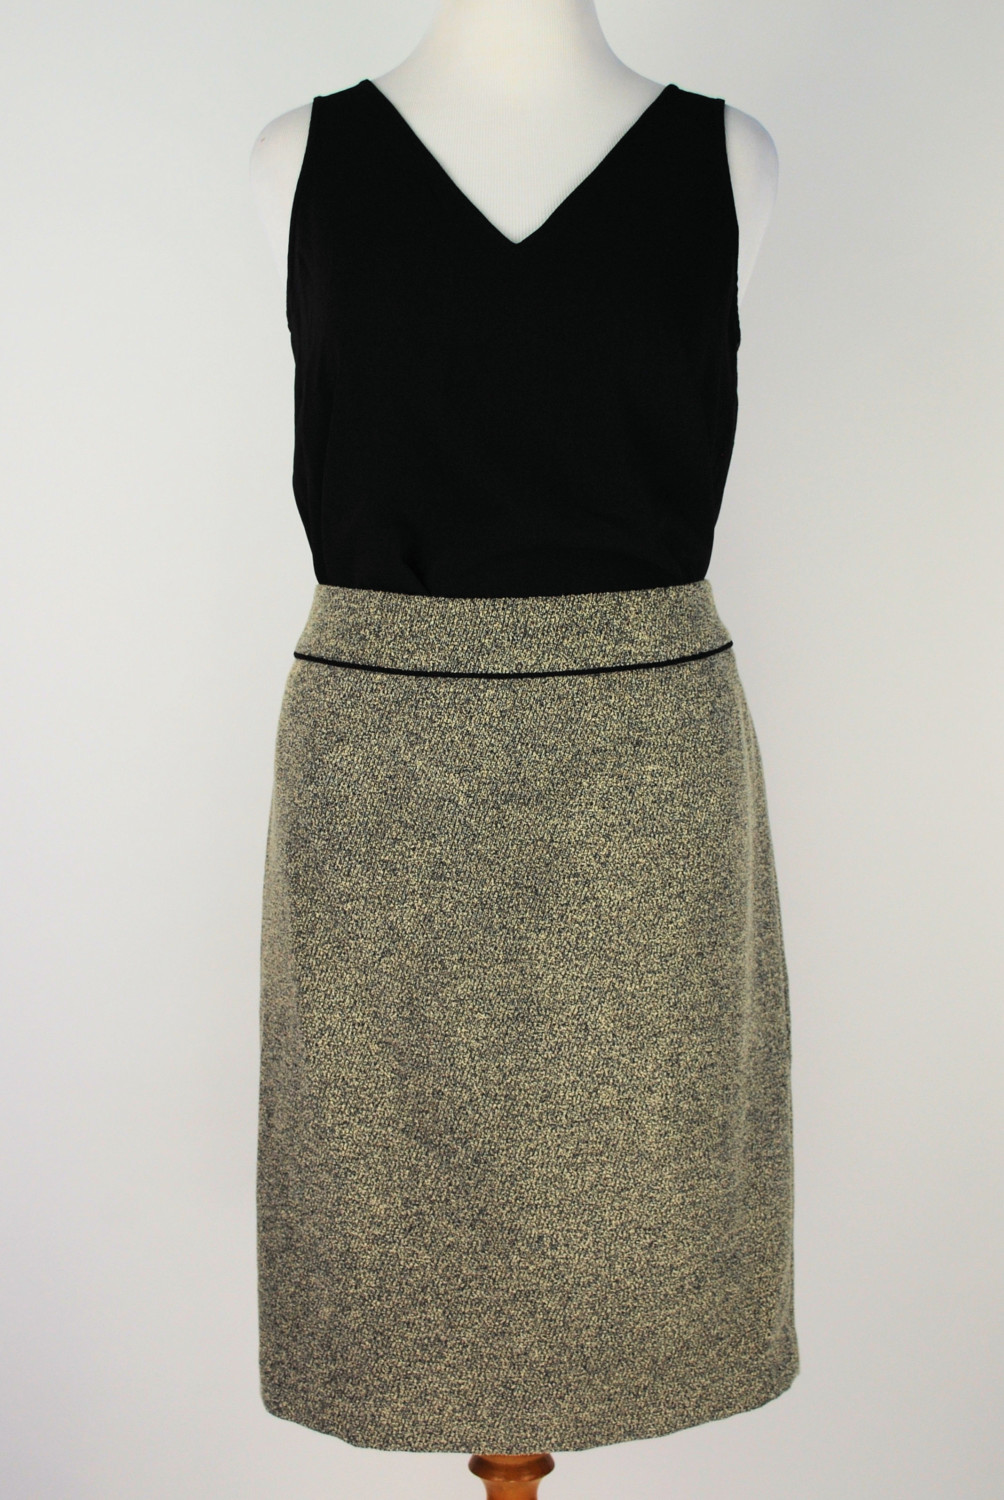 Kasper Skirt – Original Retail: $79, CWS: $20